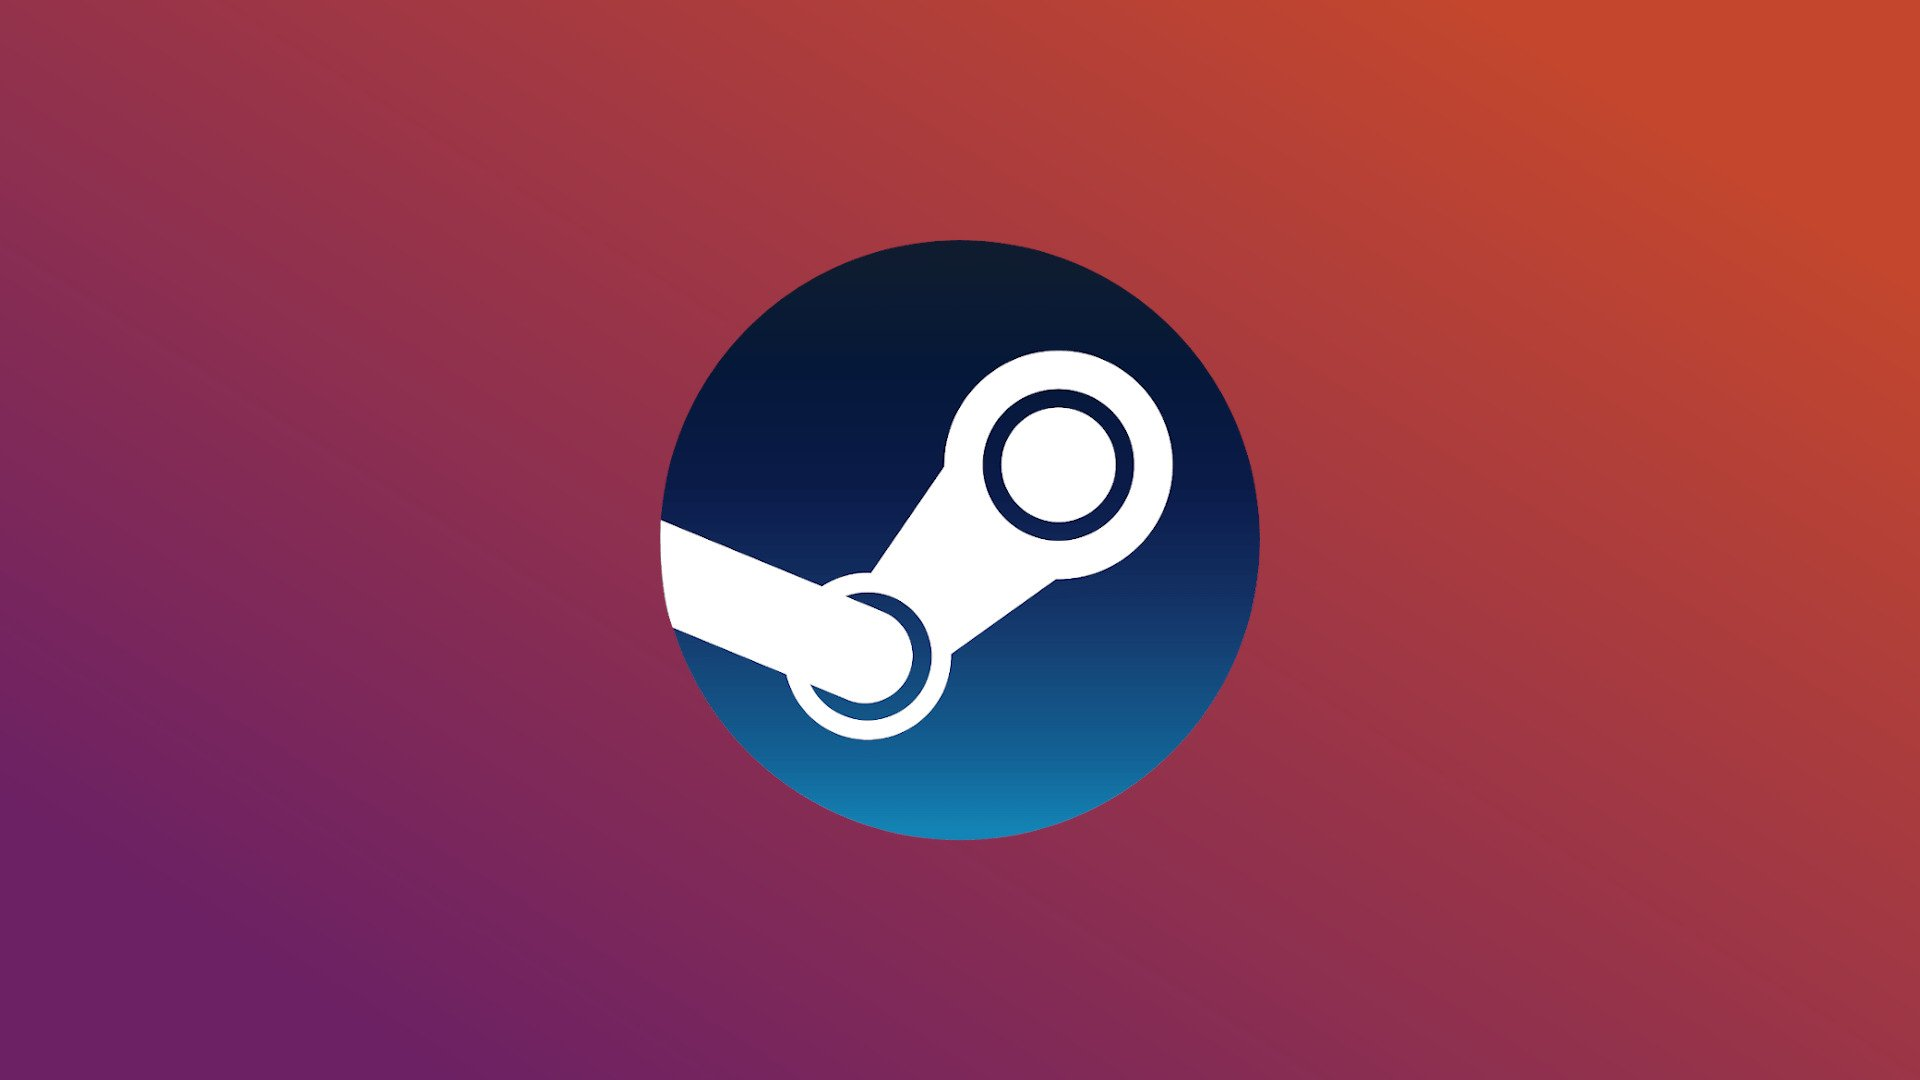 Steam (Ubuntu Background)